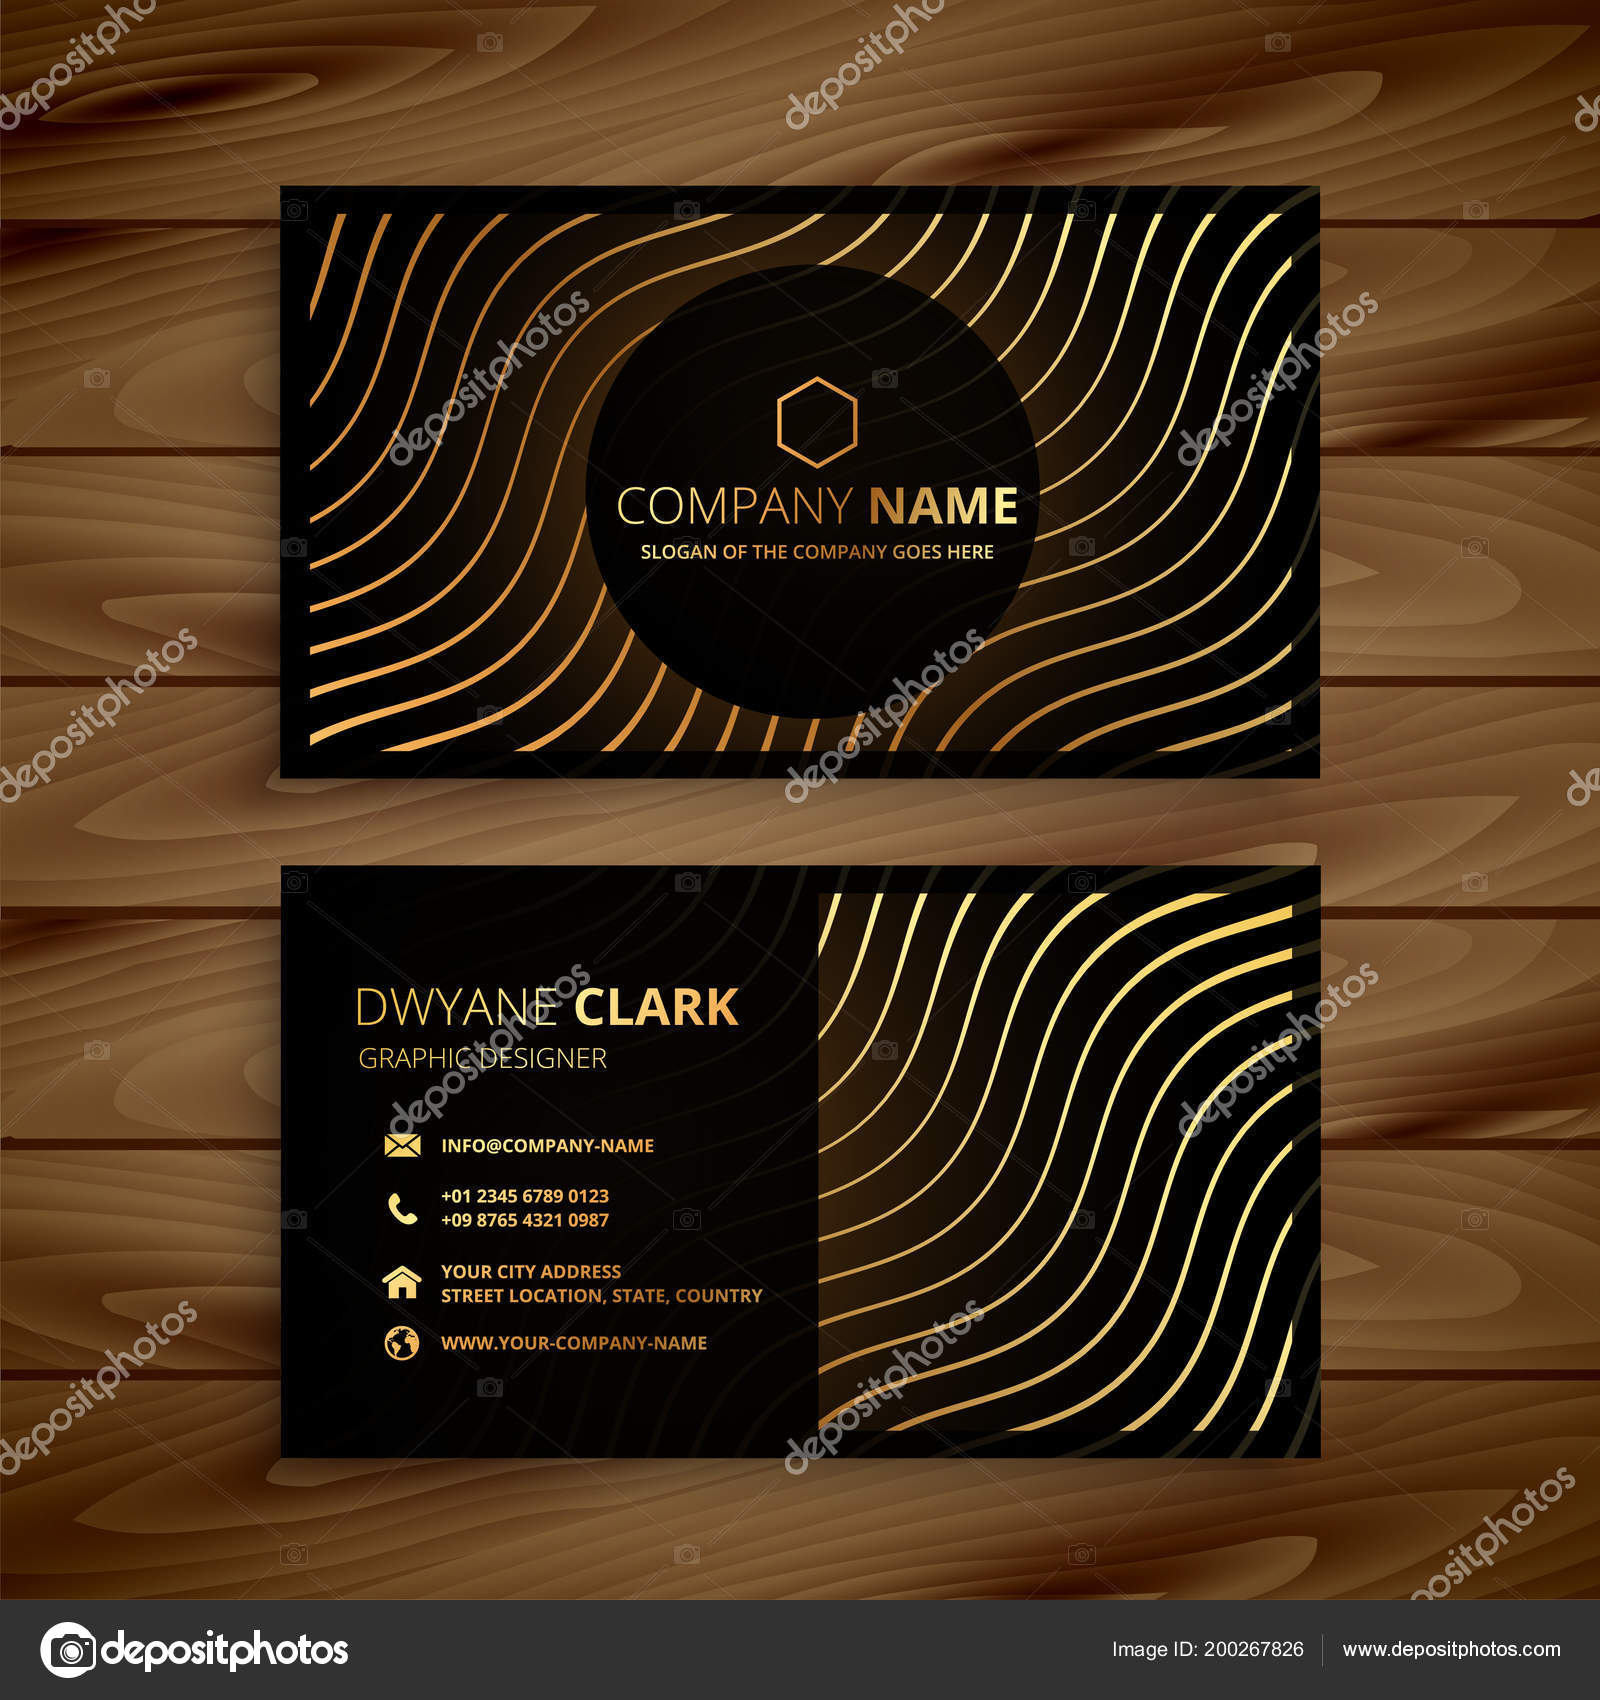 Golden premium business card template stock vector starline golden premium business card template stock vector wajeb Gallery